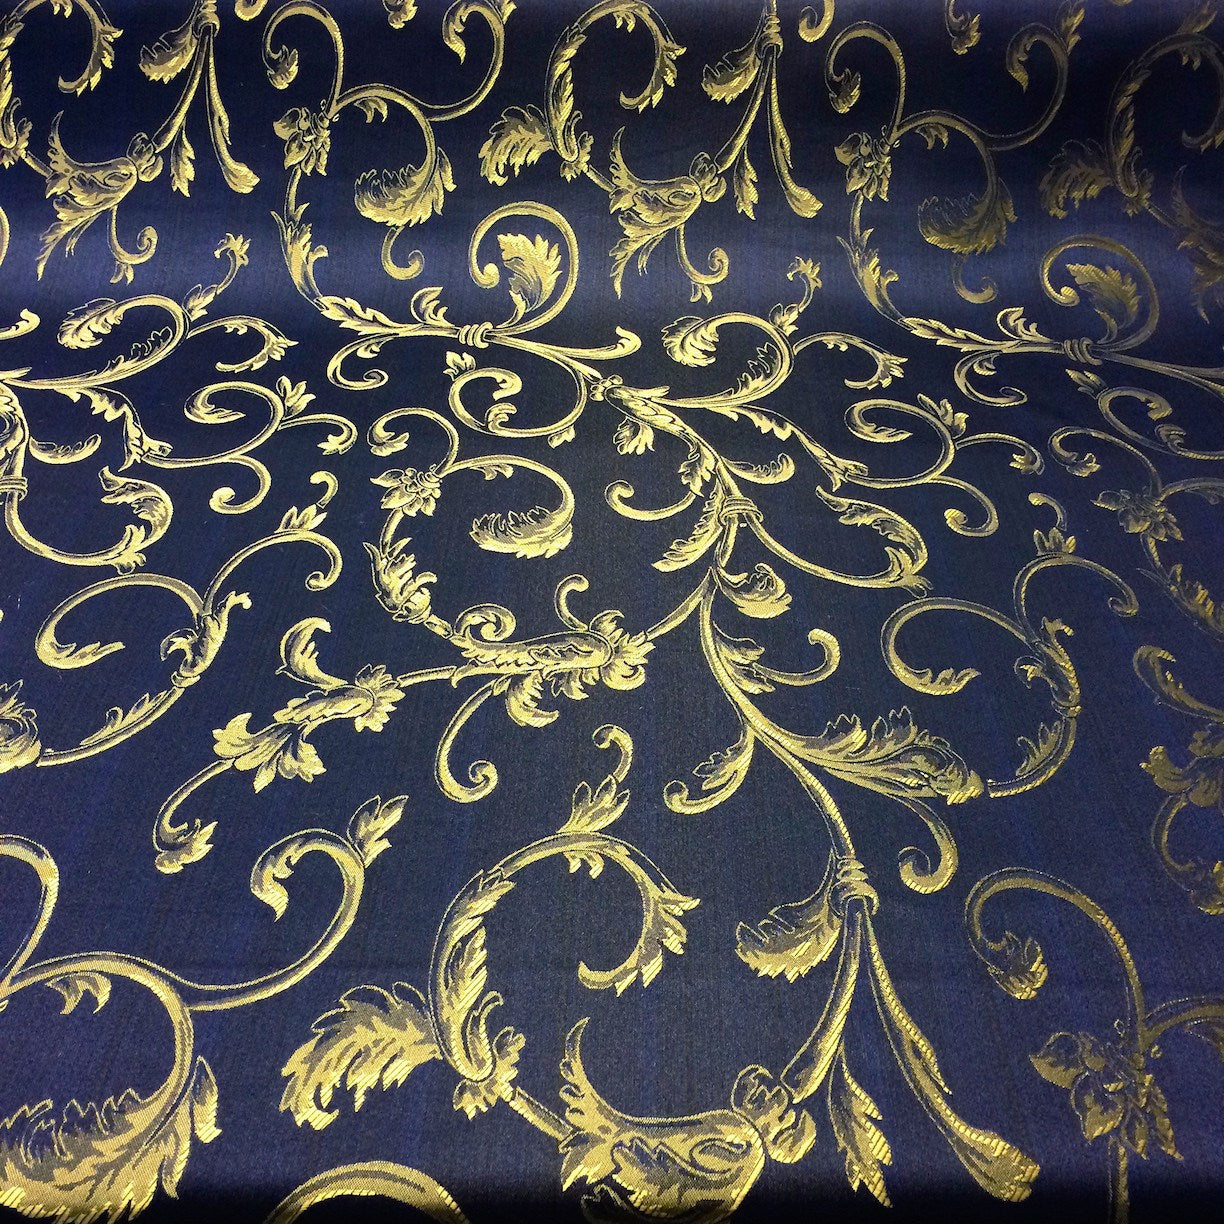 Navy Blue Amp Gold Jacquard Damask Print Fabric 120 Quot Wide